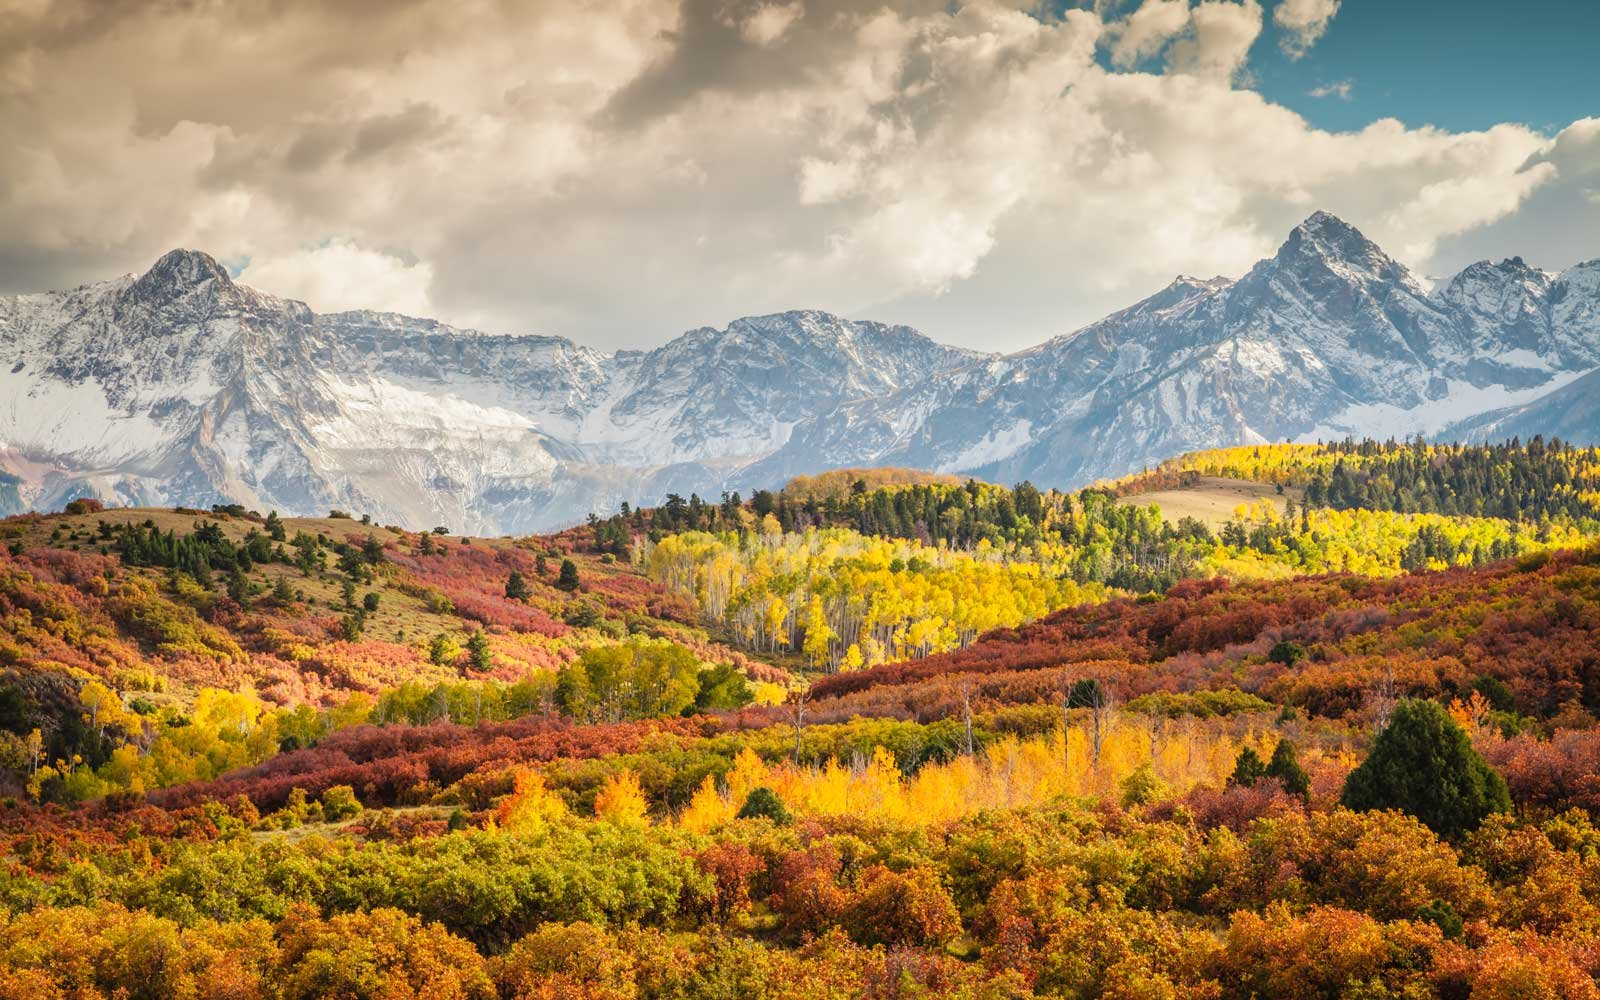 Fall colors at sunset in the Colorado Rocky Mountains